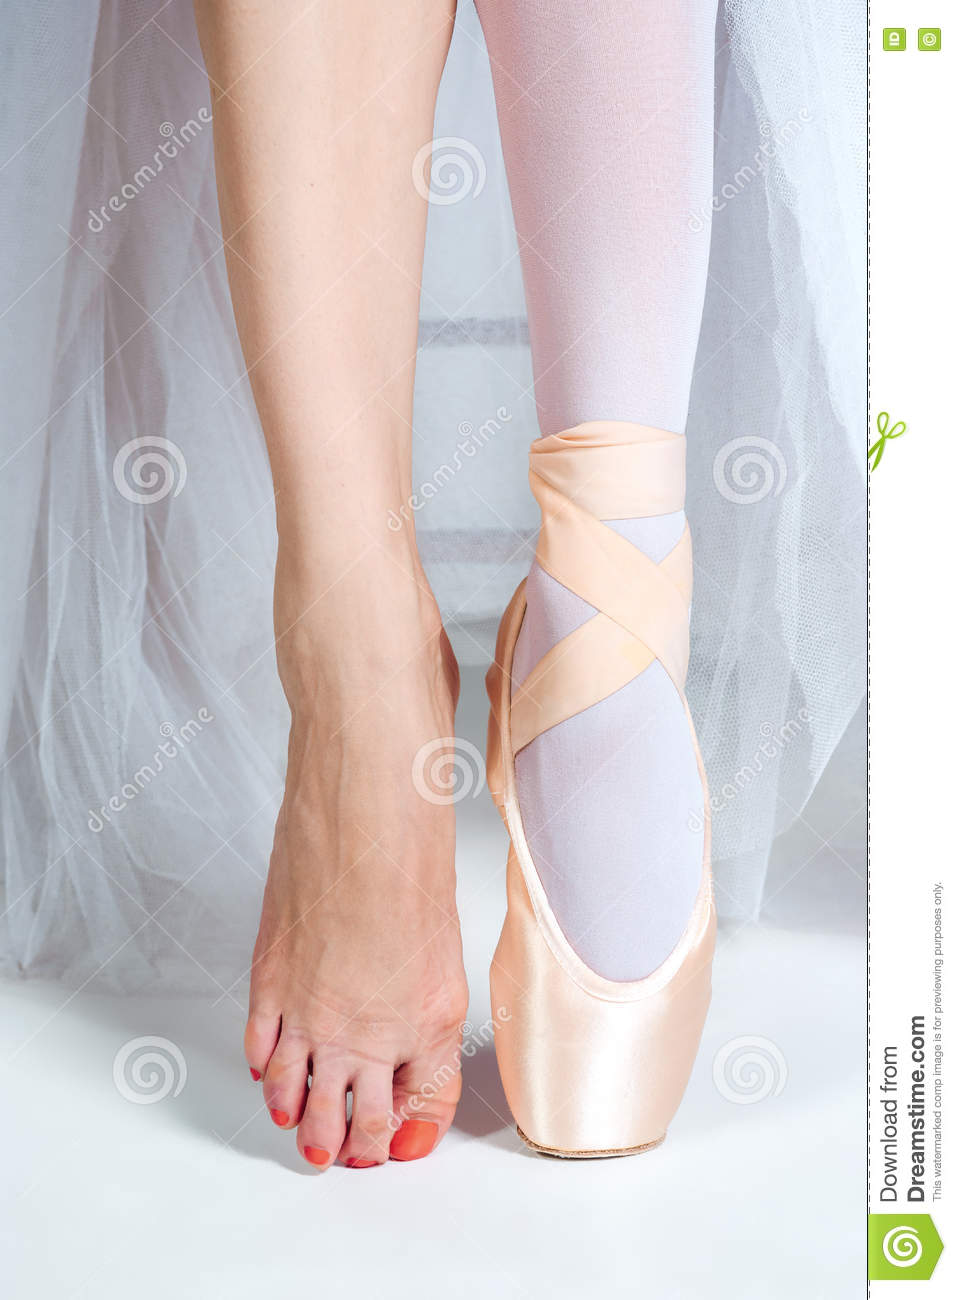 The Close-up Feet Of Young Ballerina In Pointe Shoes Stock ...